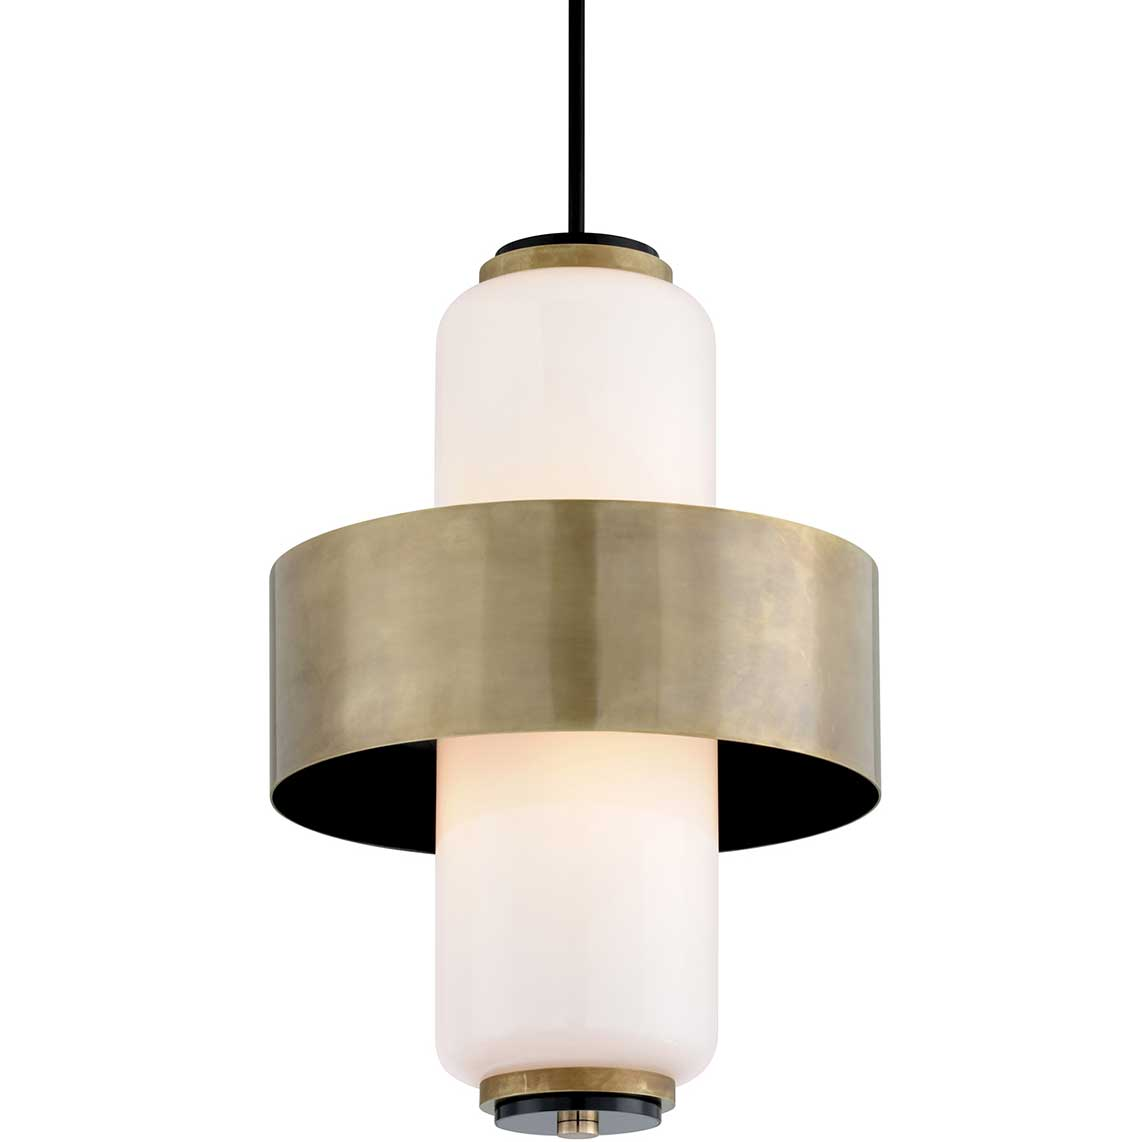 Melrose pendant by corbett lighting